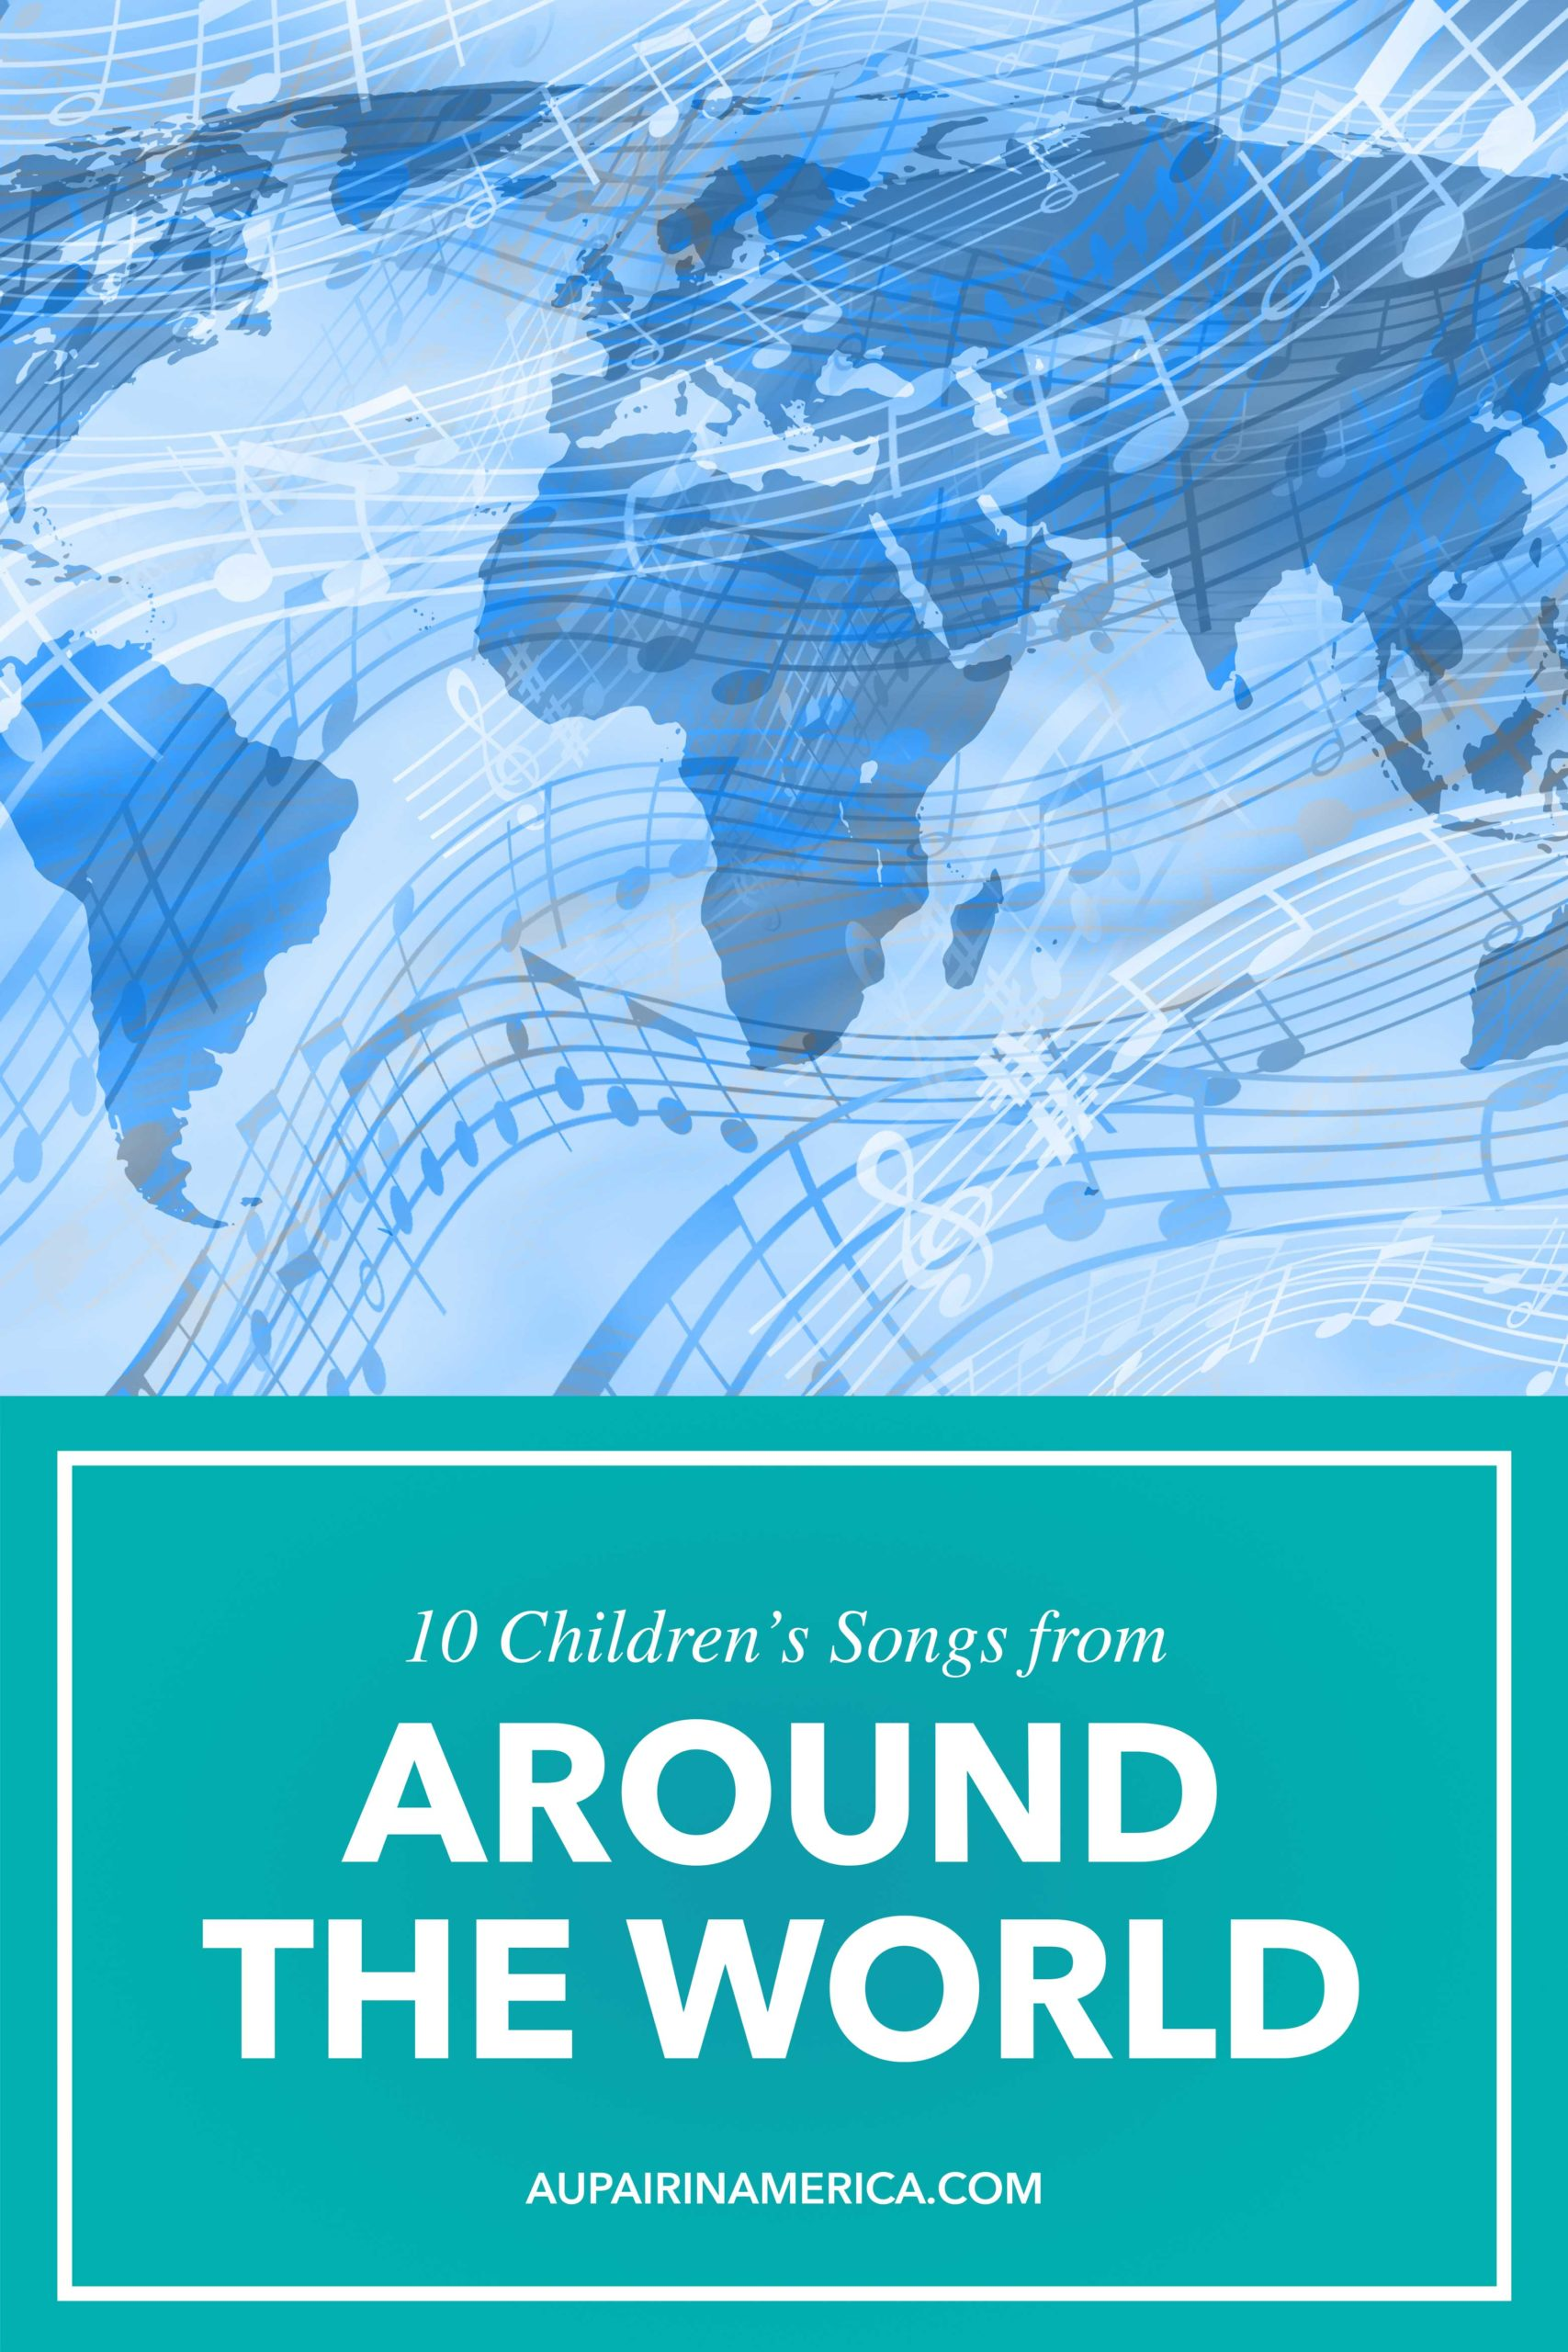 Give children a cultural education with these 10 children's songs from around the world!